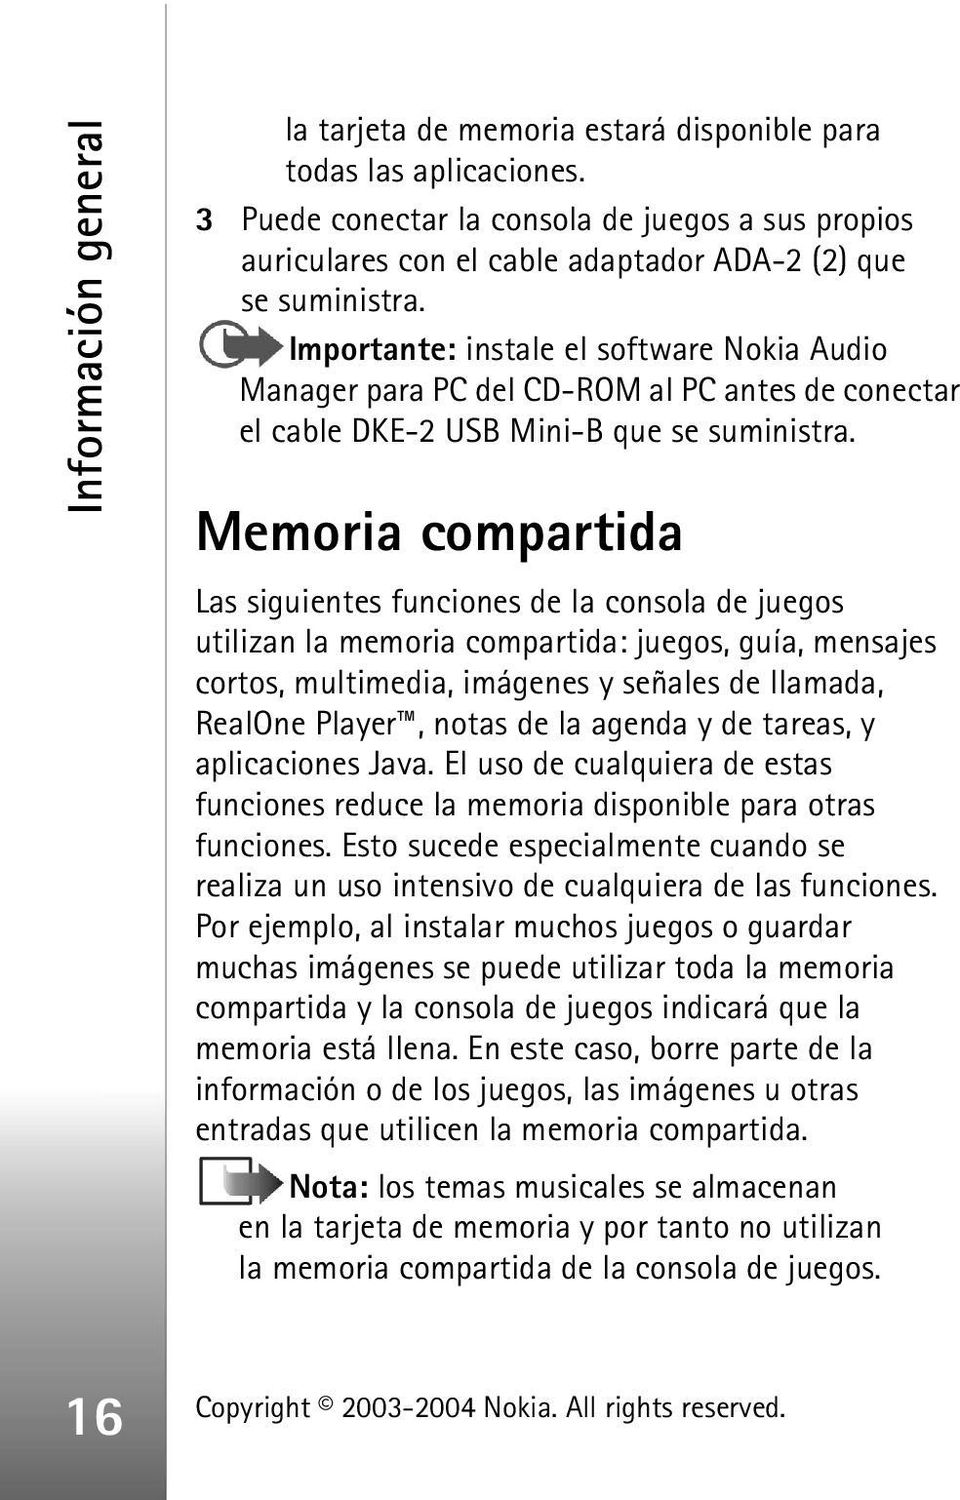 Importante: instale el software Nokia Audio Manager para PC del CD-ROM al PC antes de conectar el cable DKE-2 USB Mini-B que se suministra.